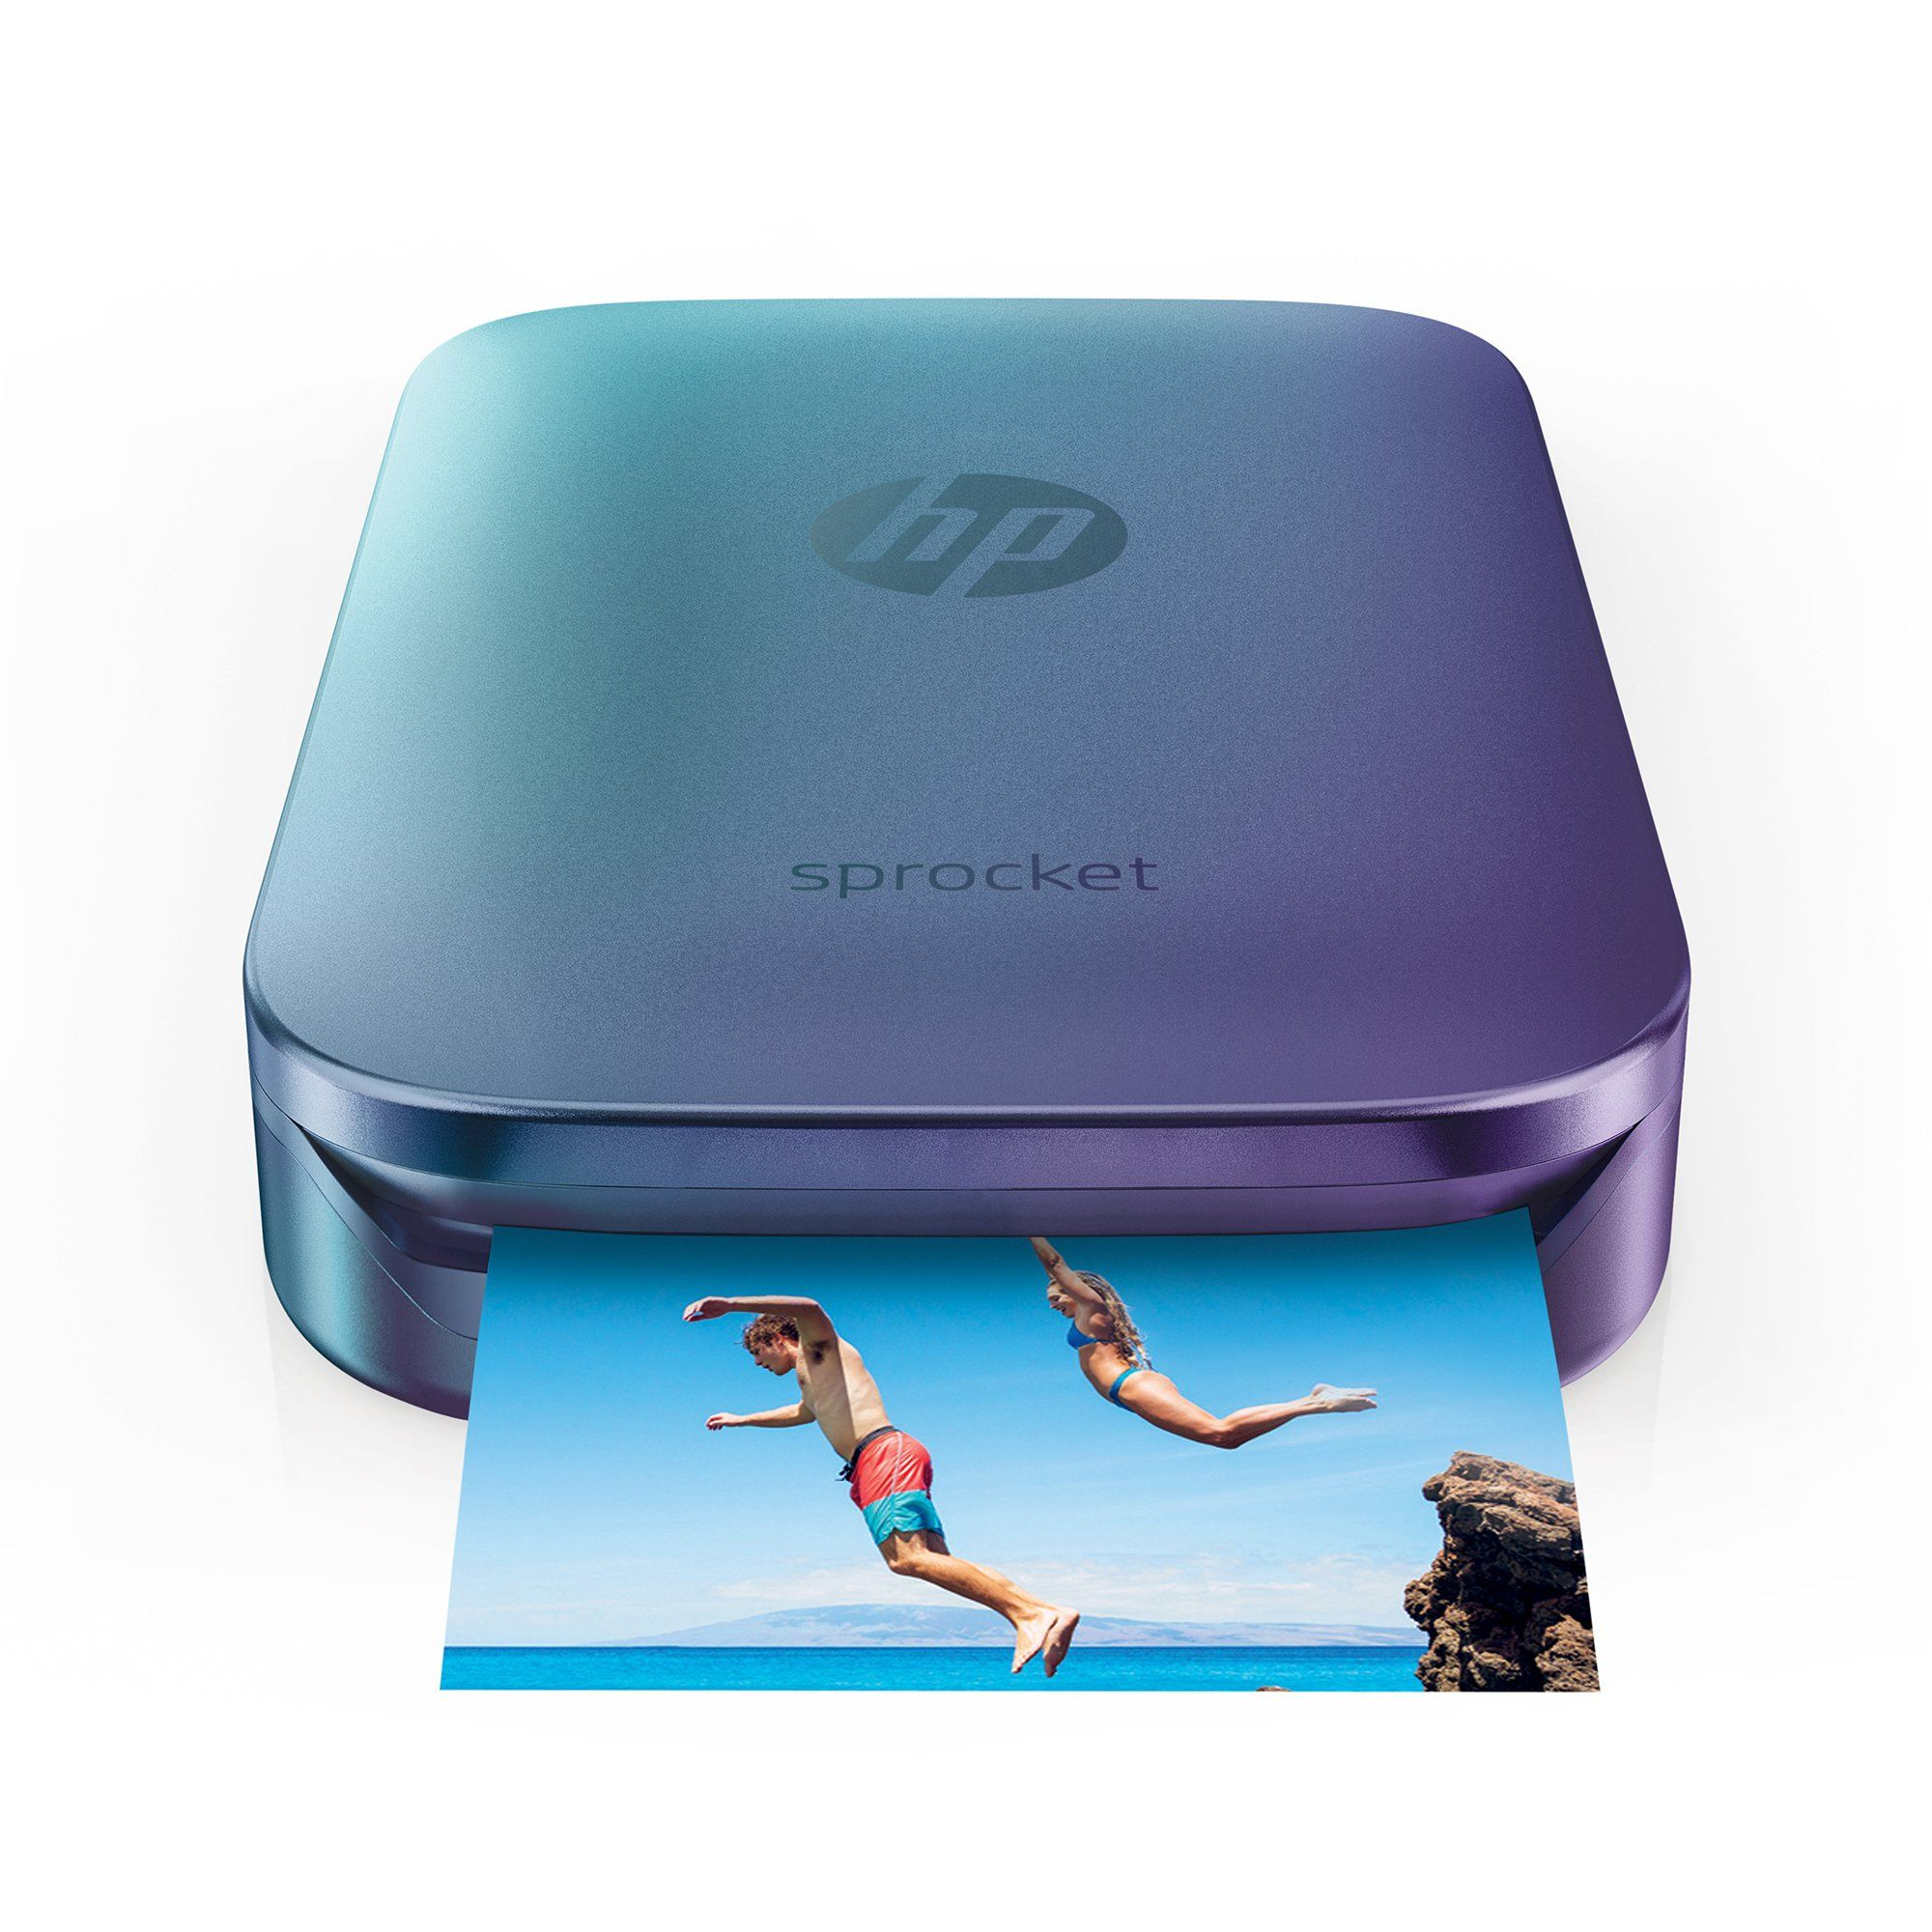 PRIME DAY DEAL: Save $40 on HP Blue Sprocket Portable Photo Printer